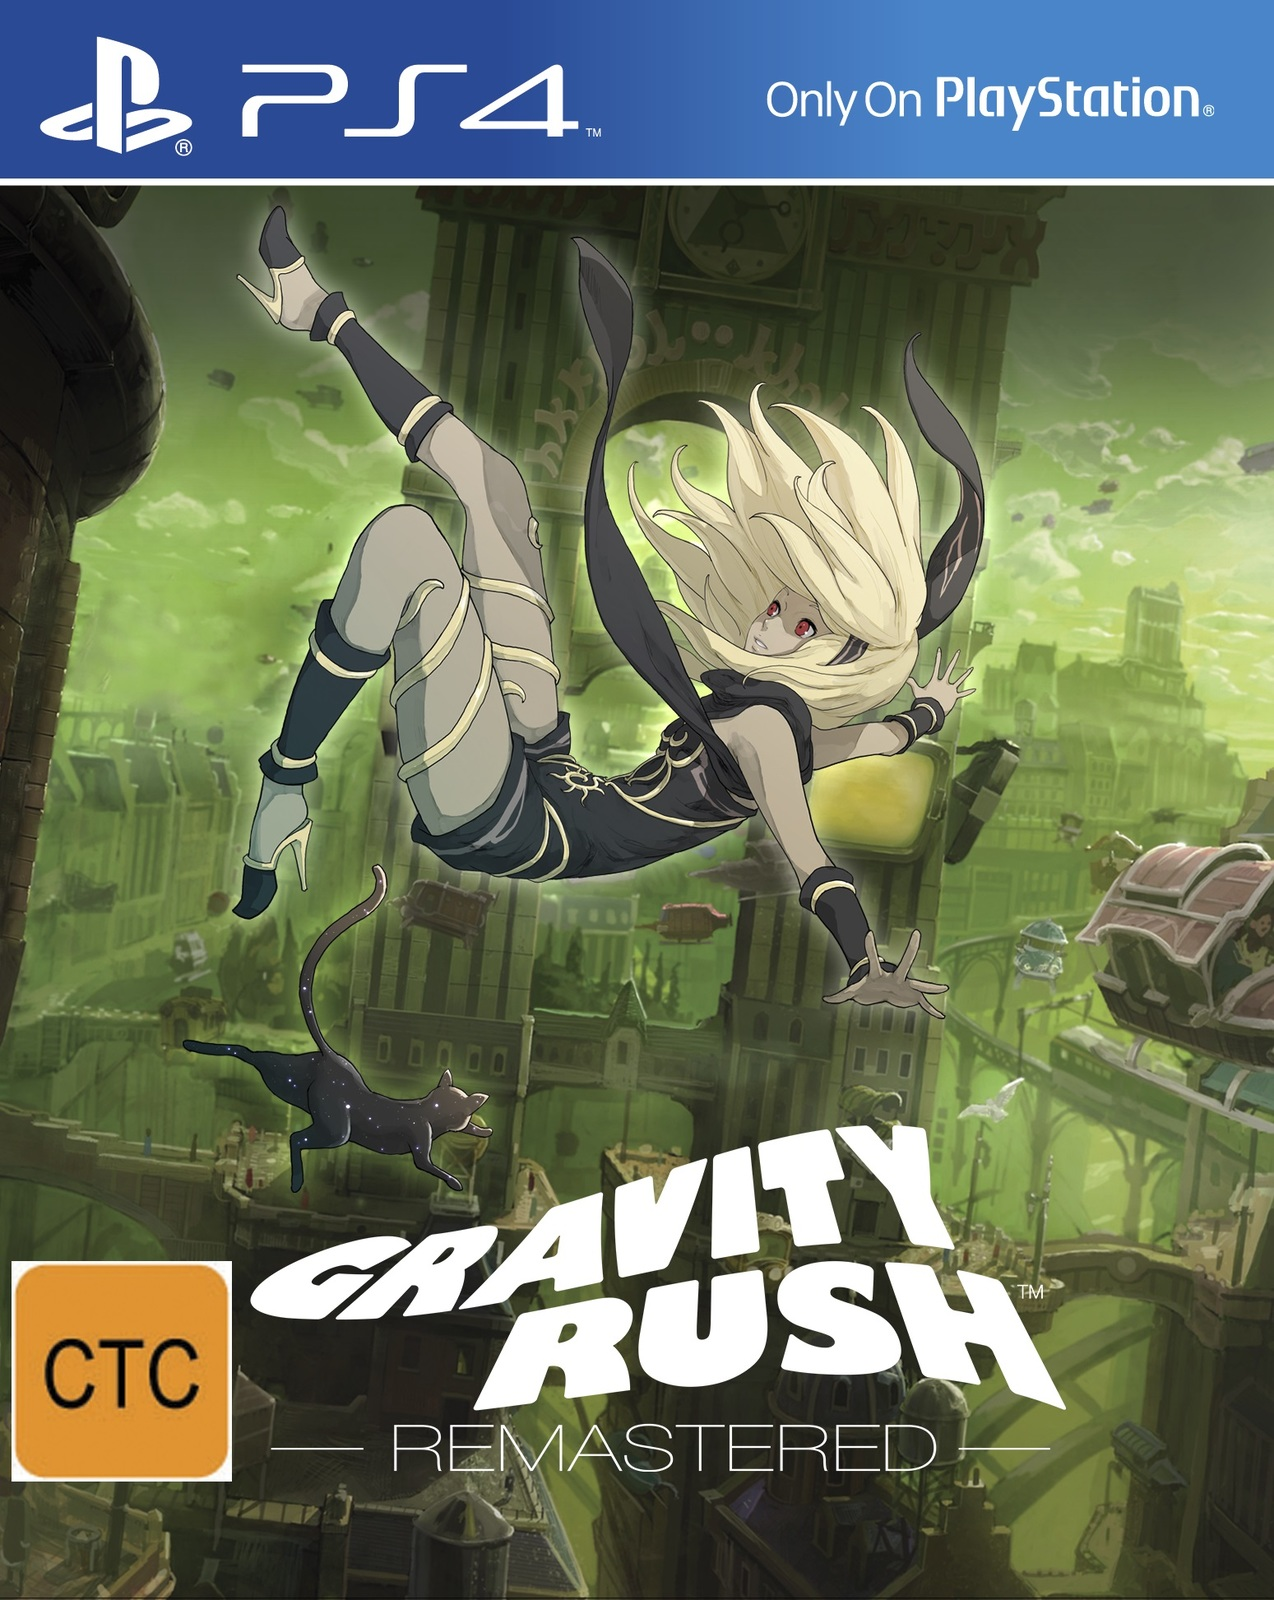 Gravity Rush Ps4 In Stock Buy Now At Mighty Ape Nz Sony 2 Remastered For Image